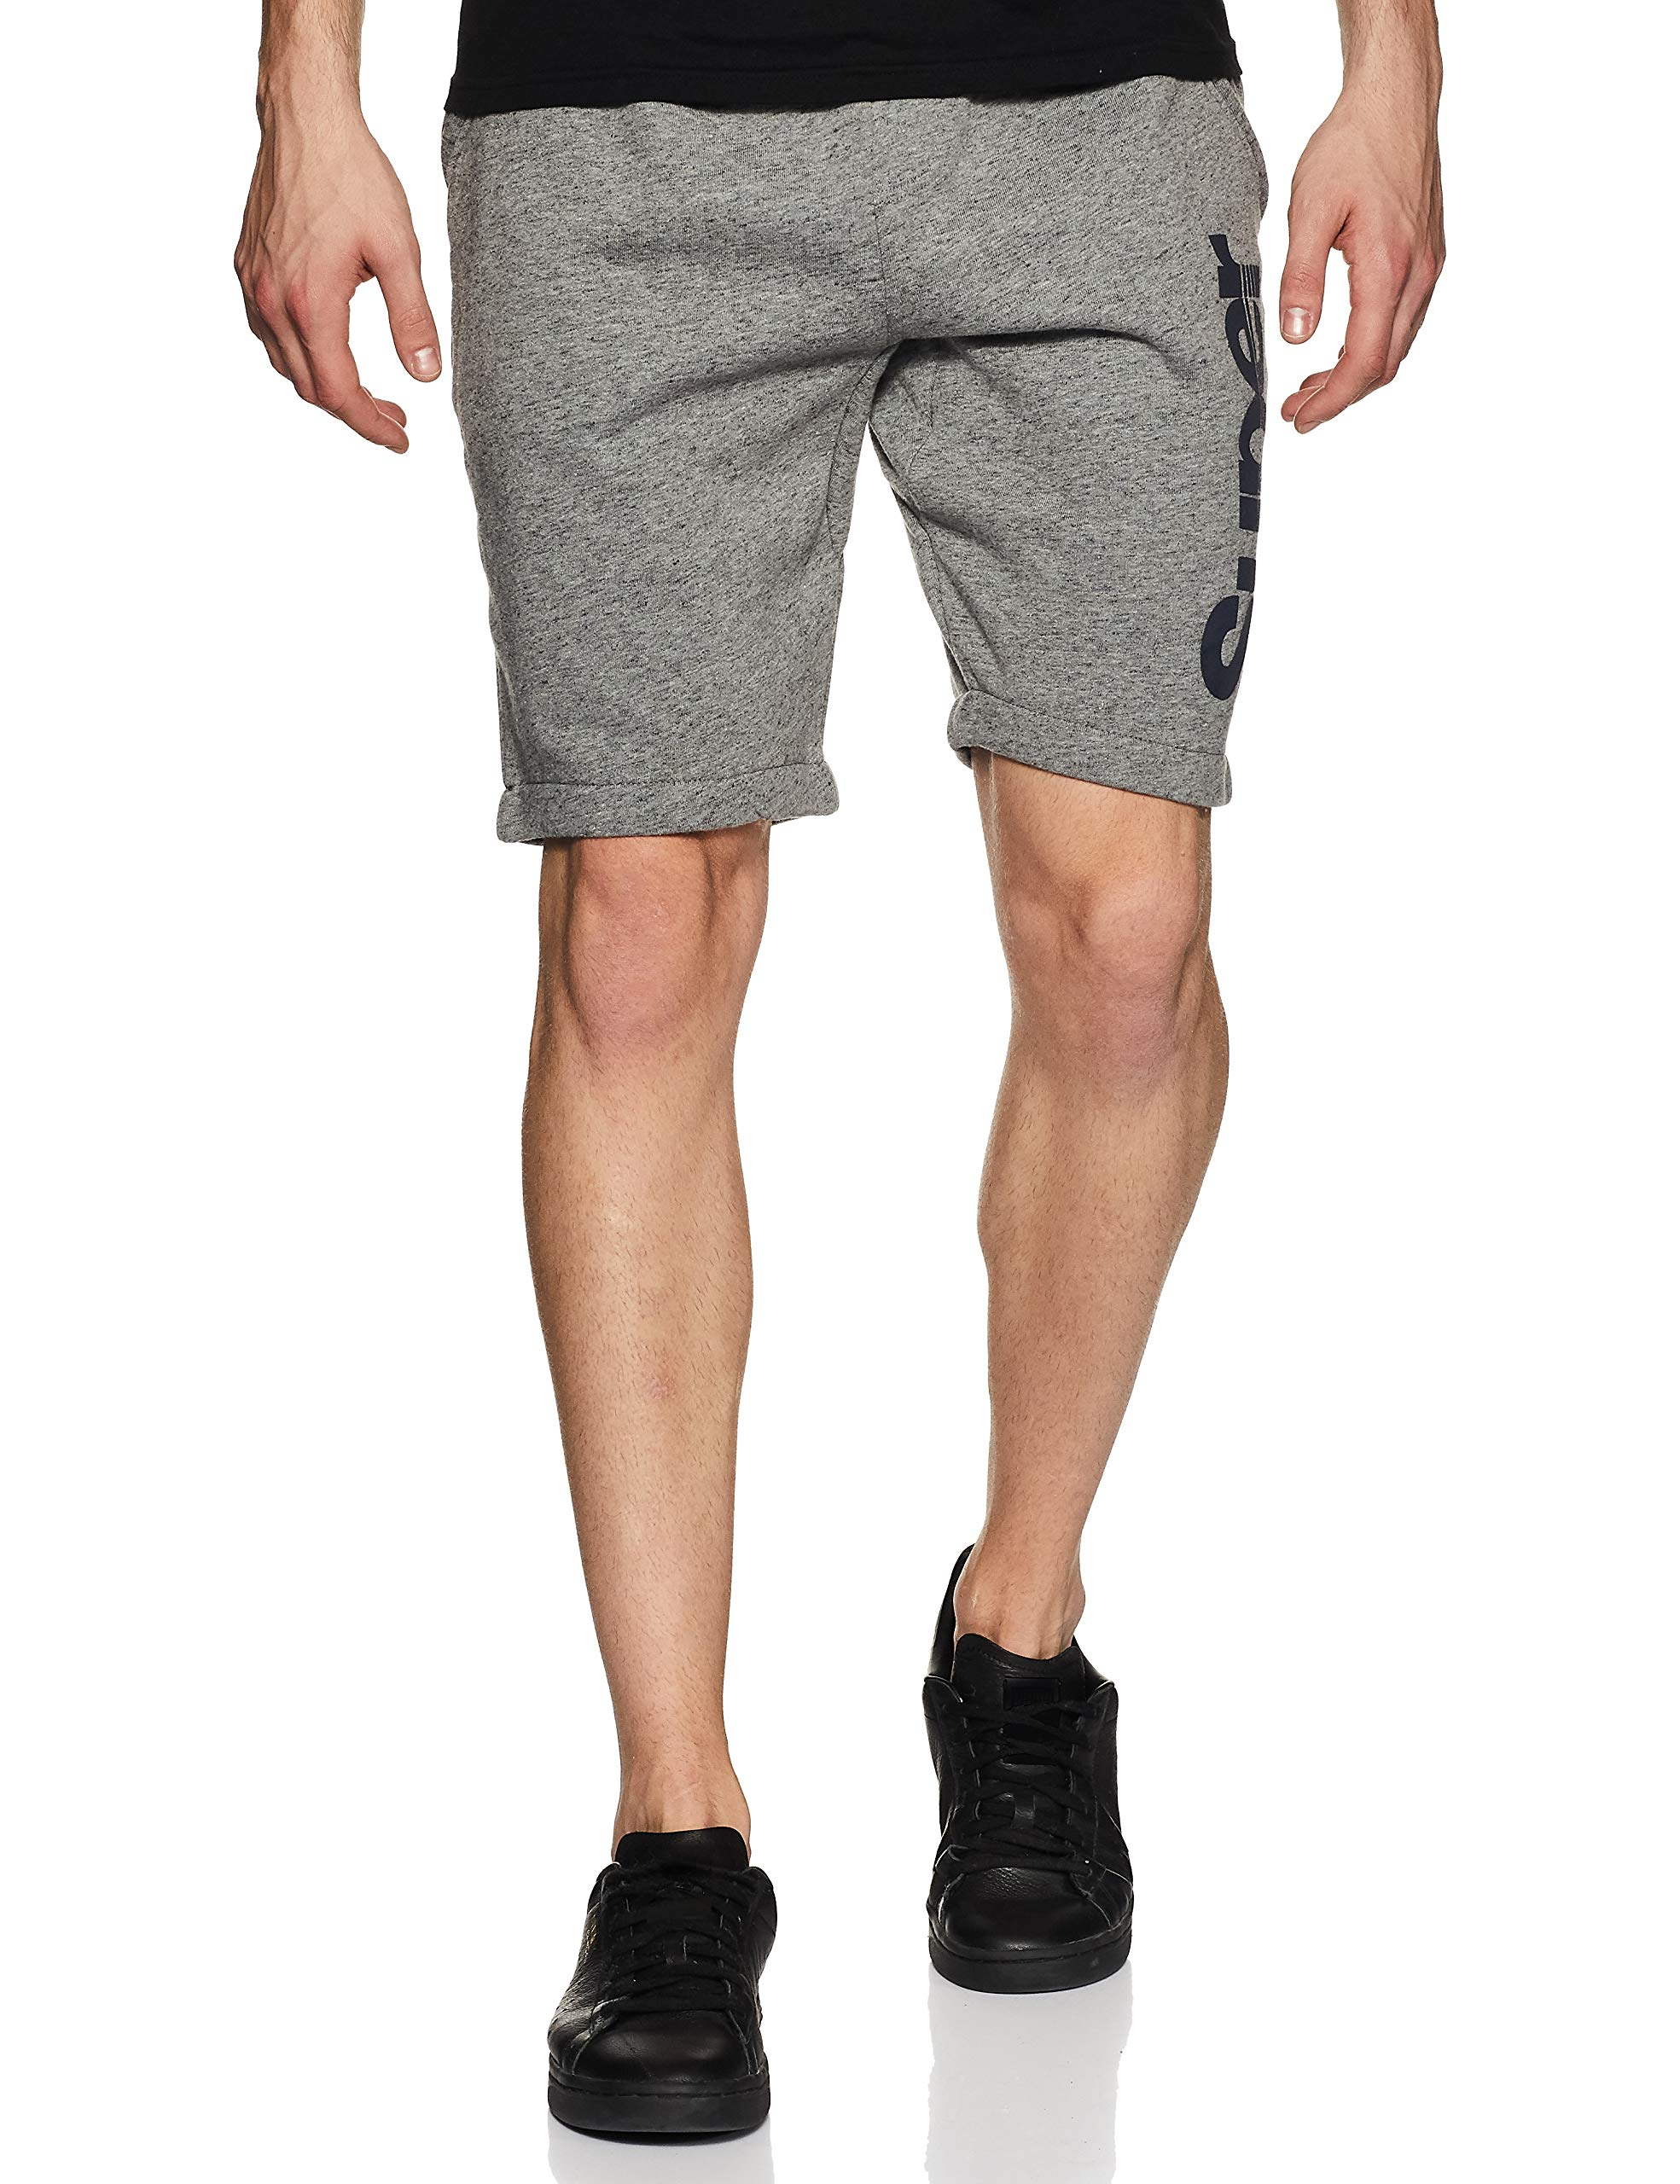 Time Grit Grey SportGrisquarry Trial Short A3i48taille Fabricant2xlHomme Superdry 0wPnNkXZ8O